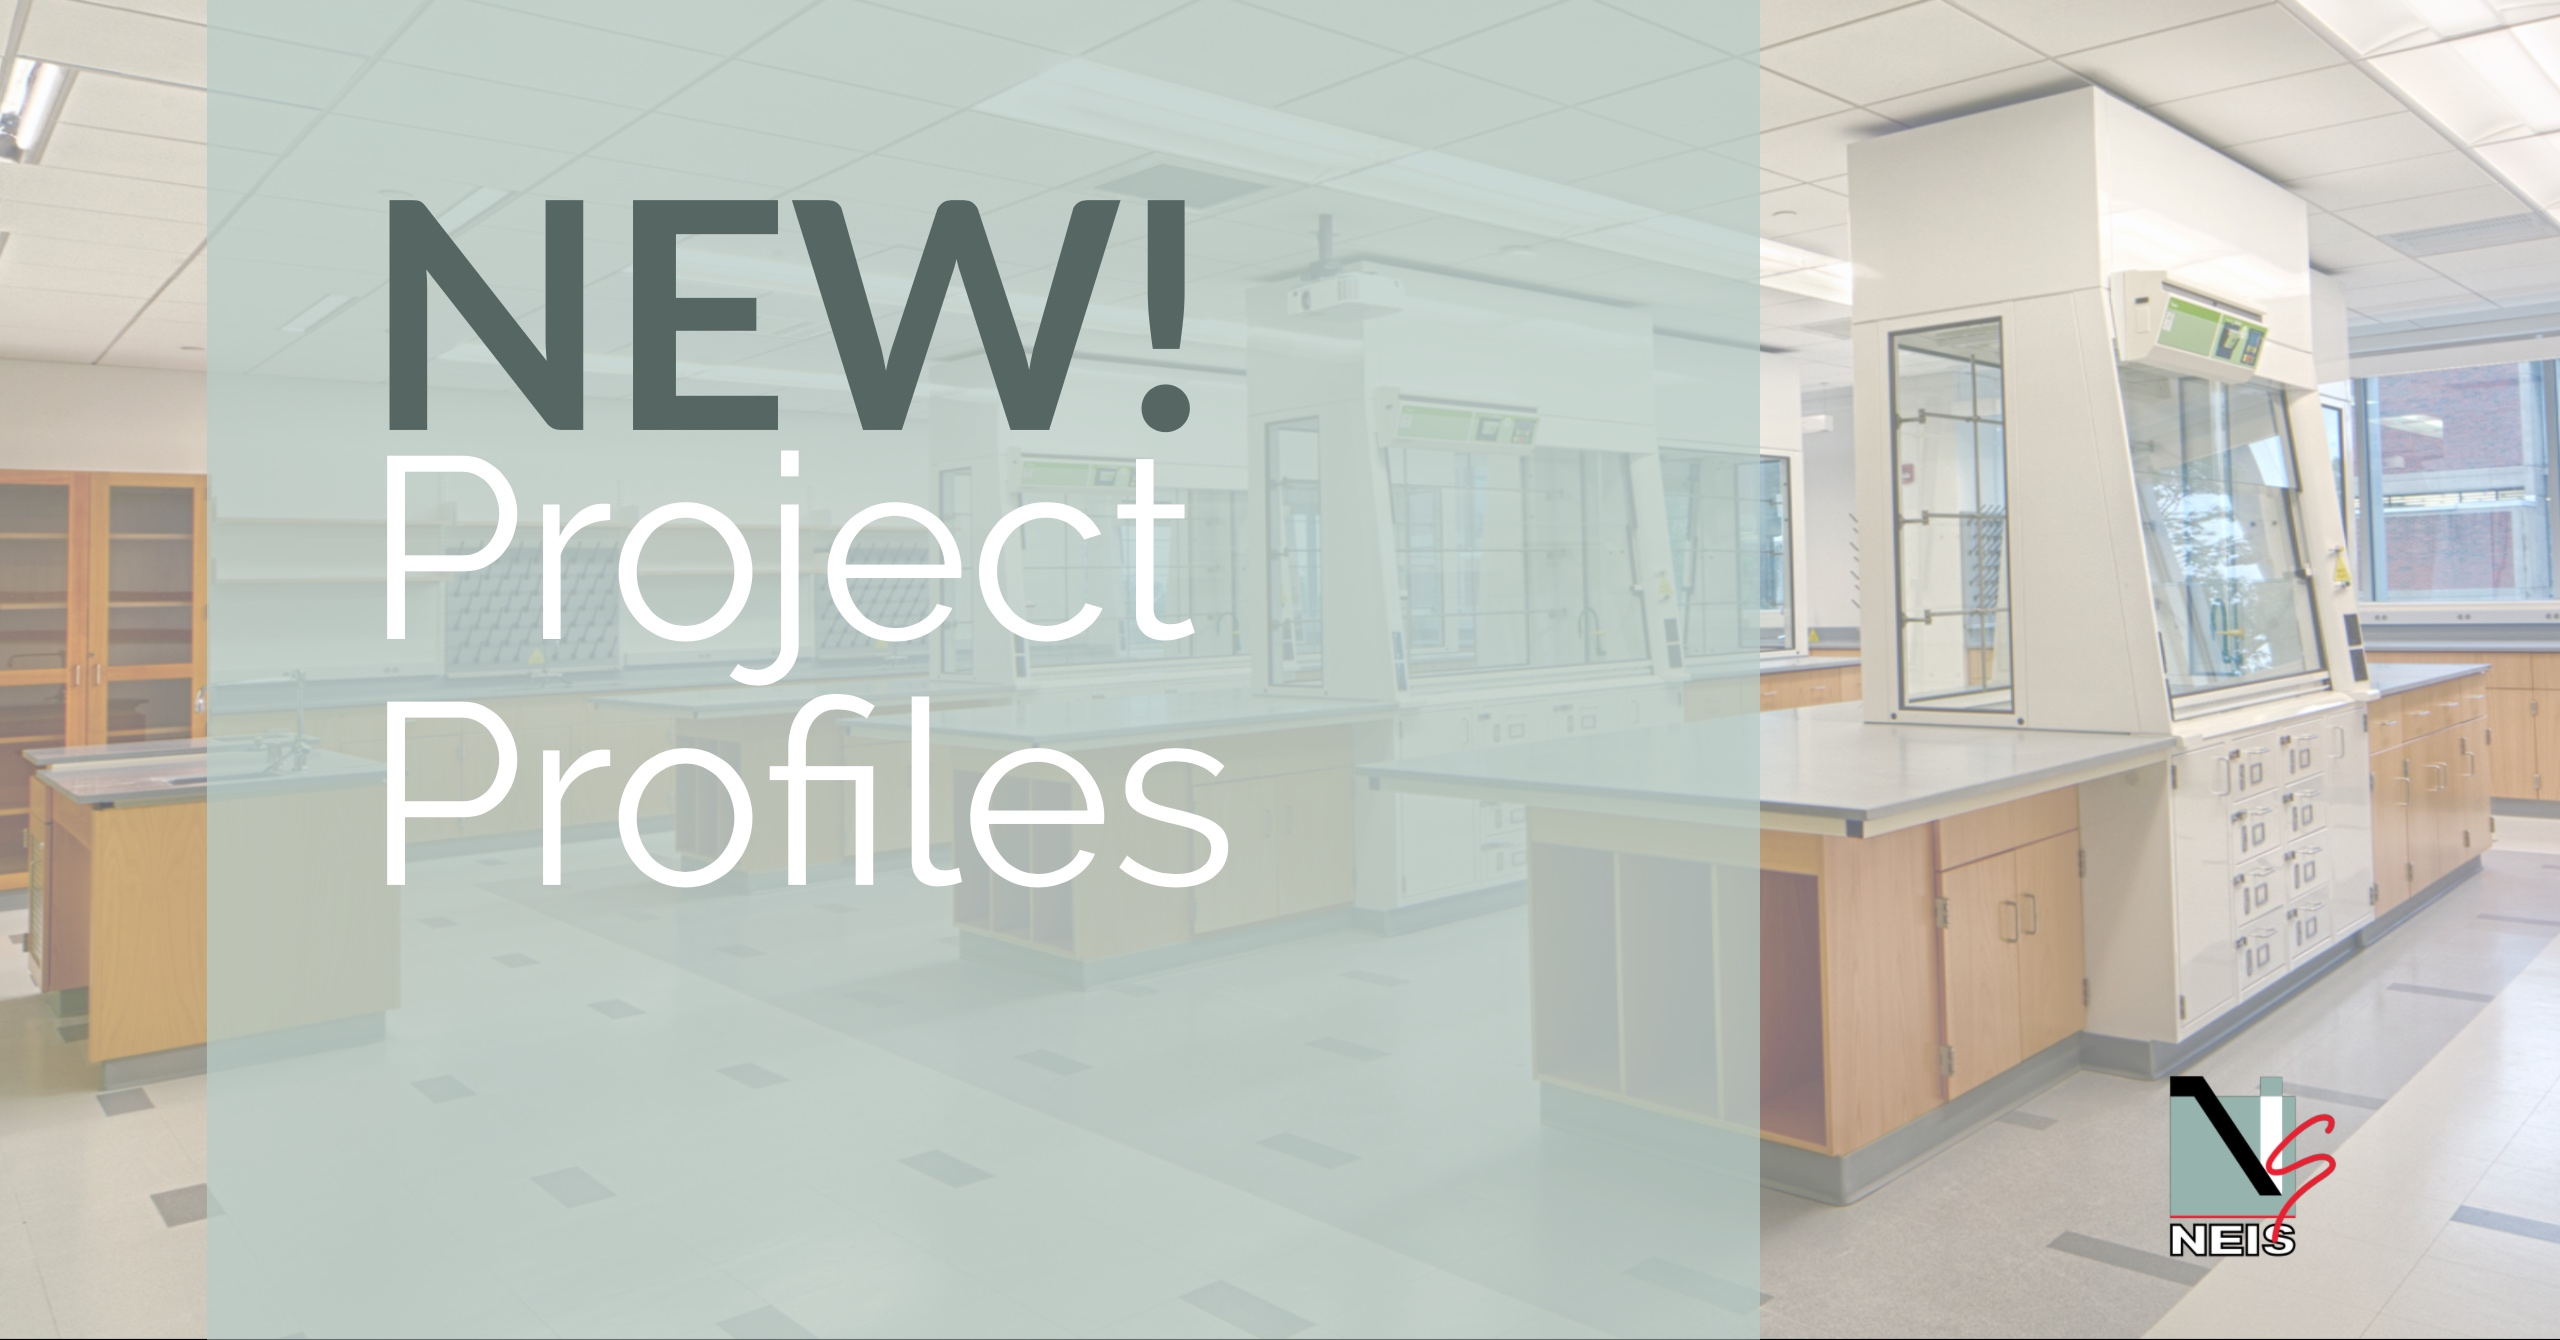 NEIS: NEW Project Profiles! - photo